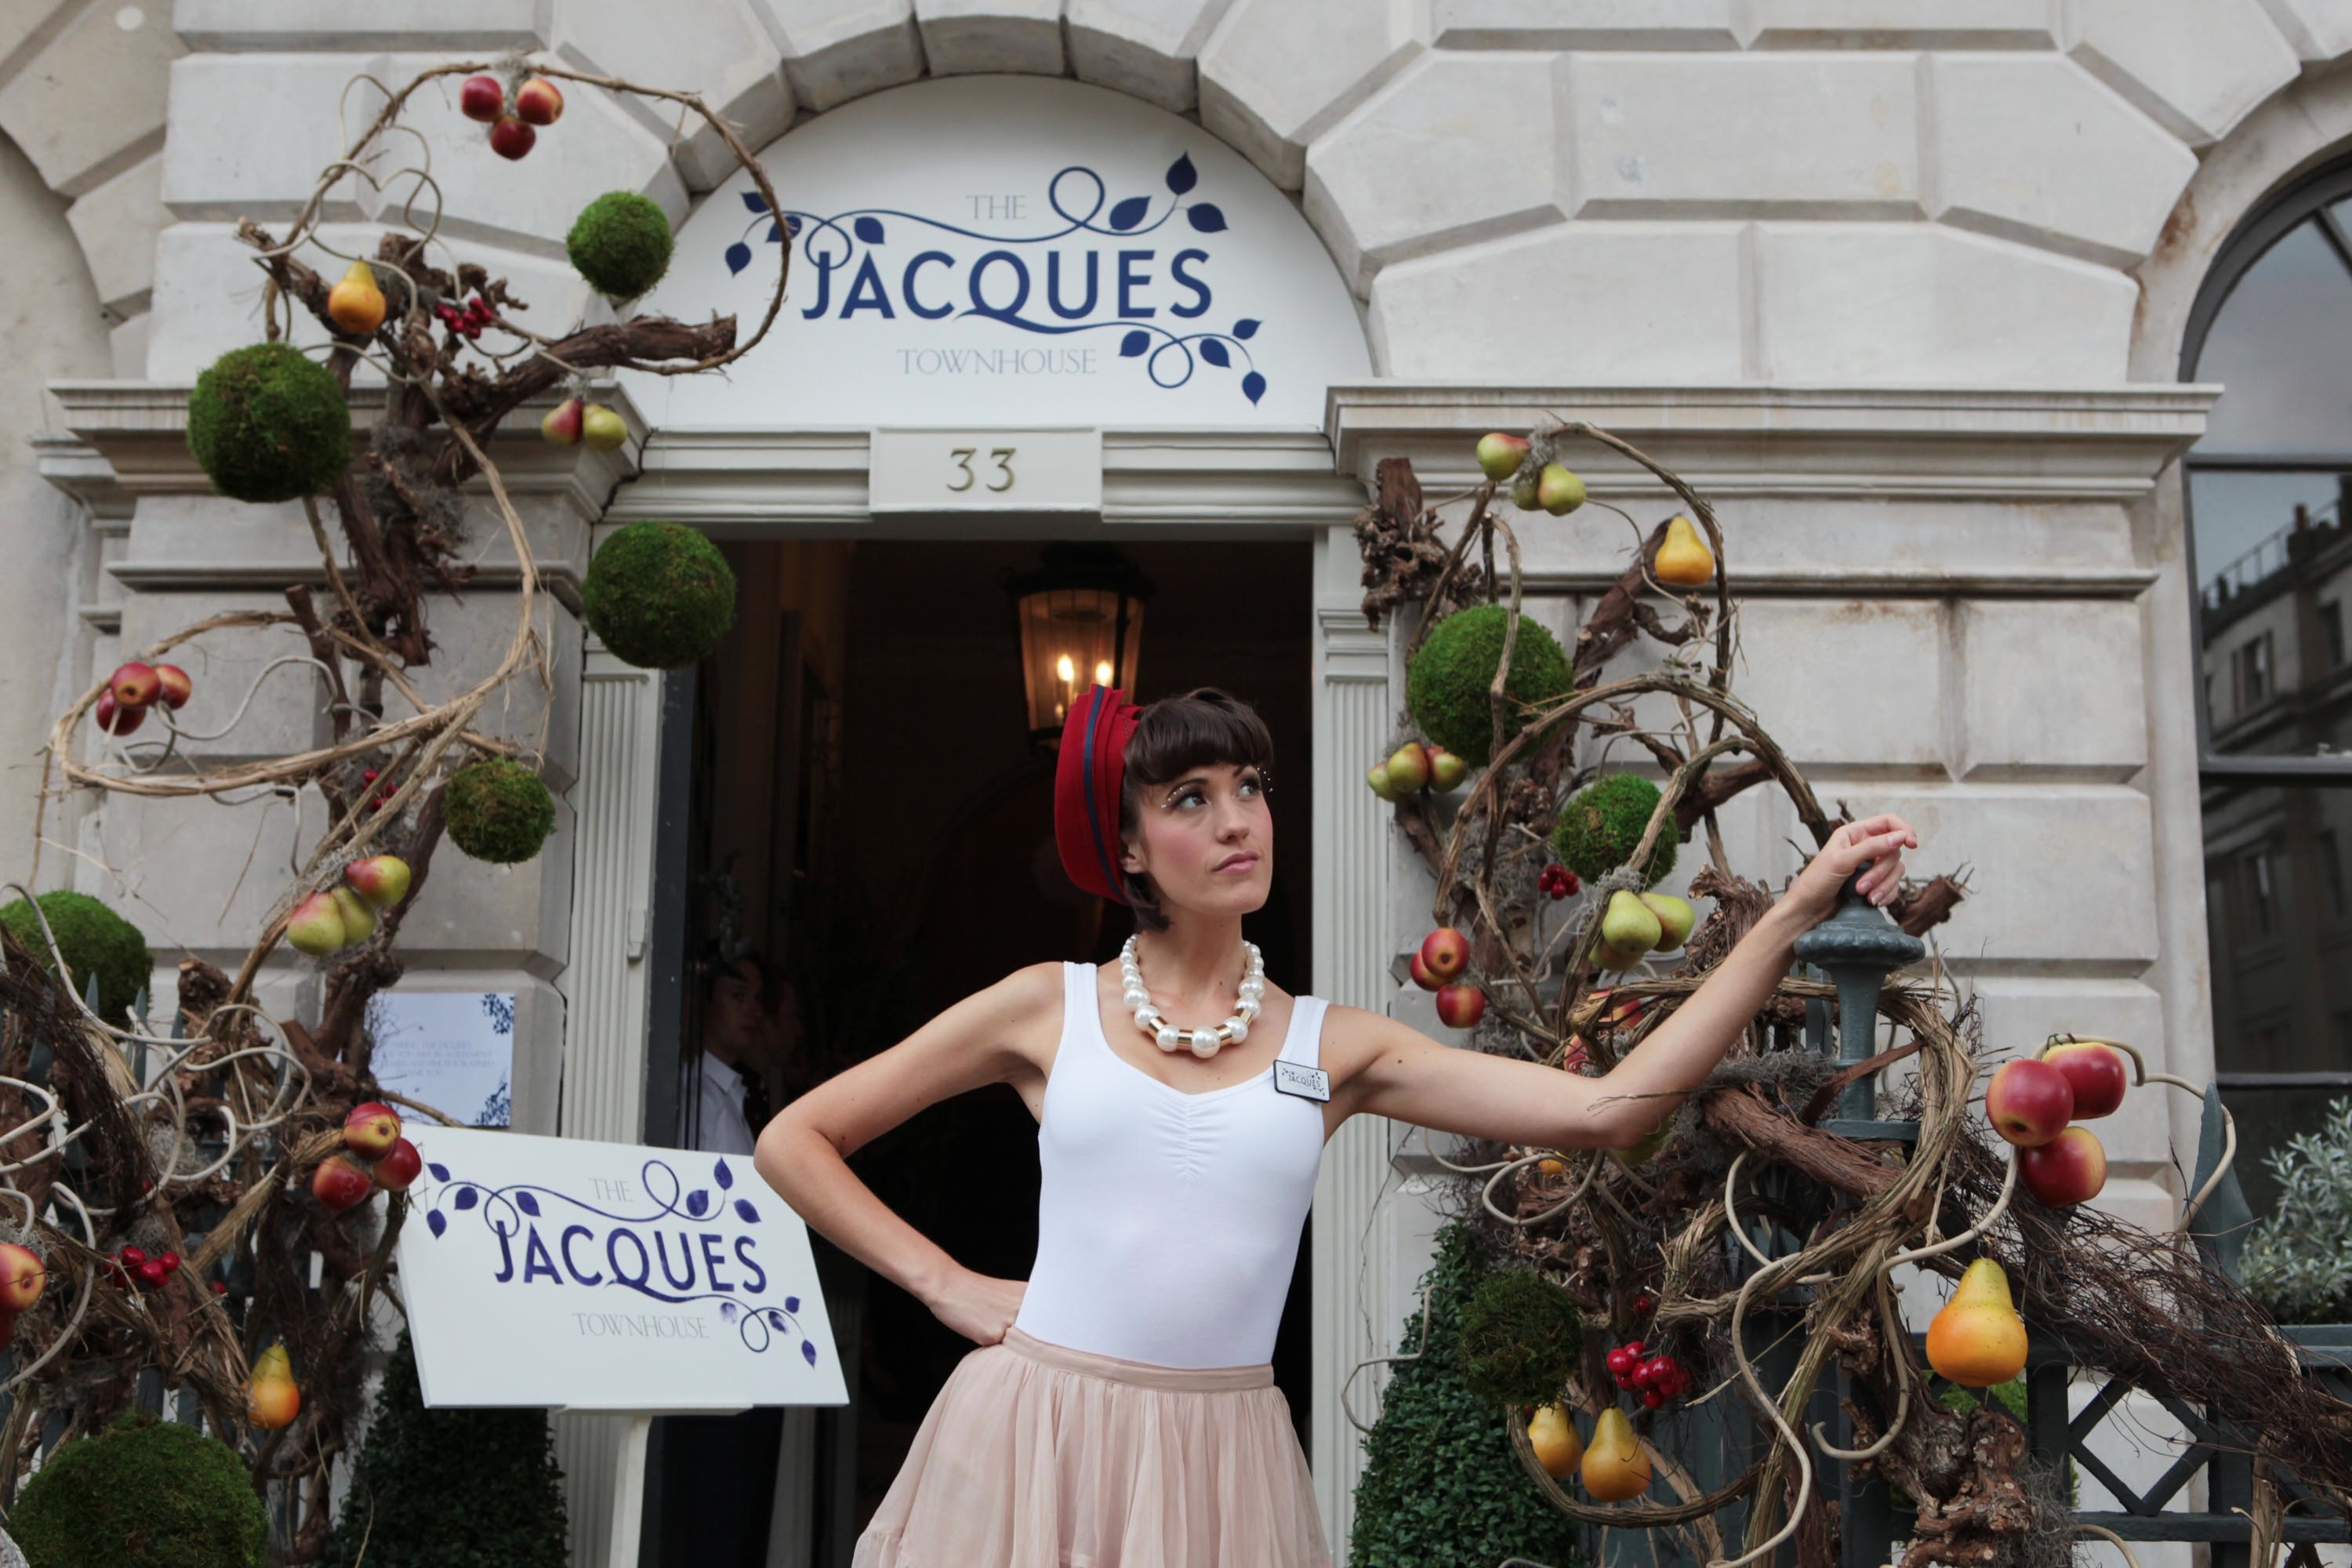 Jacques Townhouse